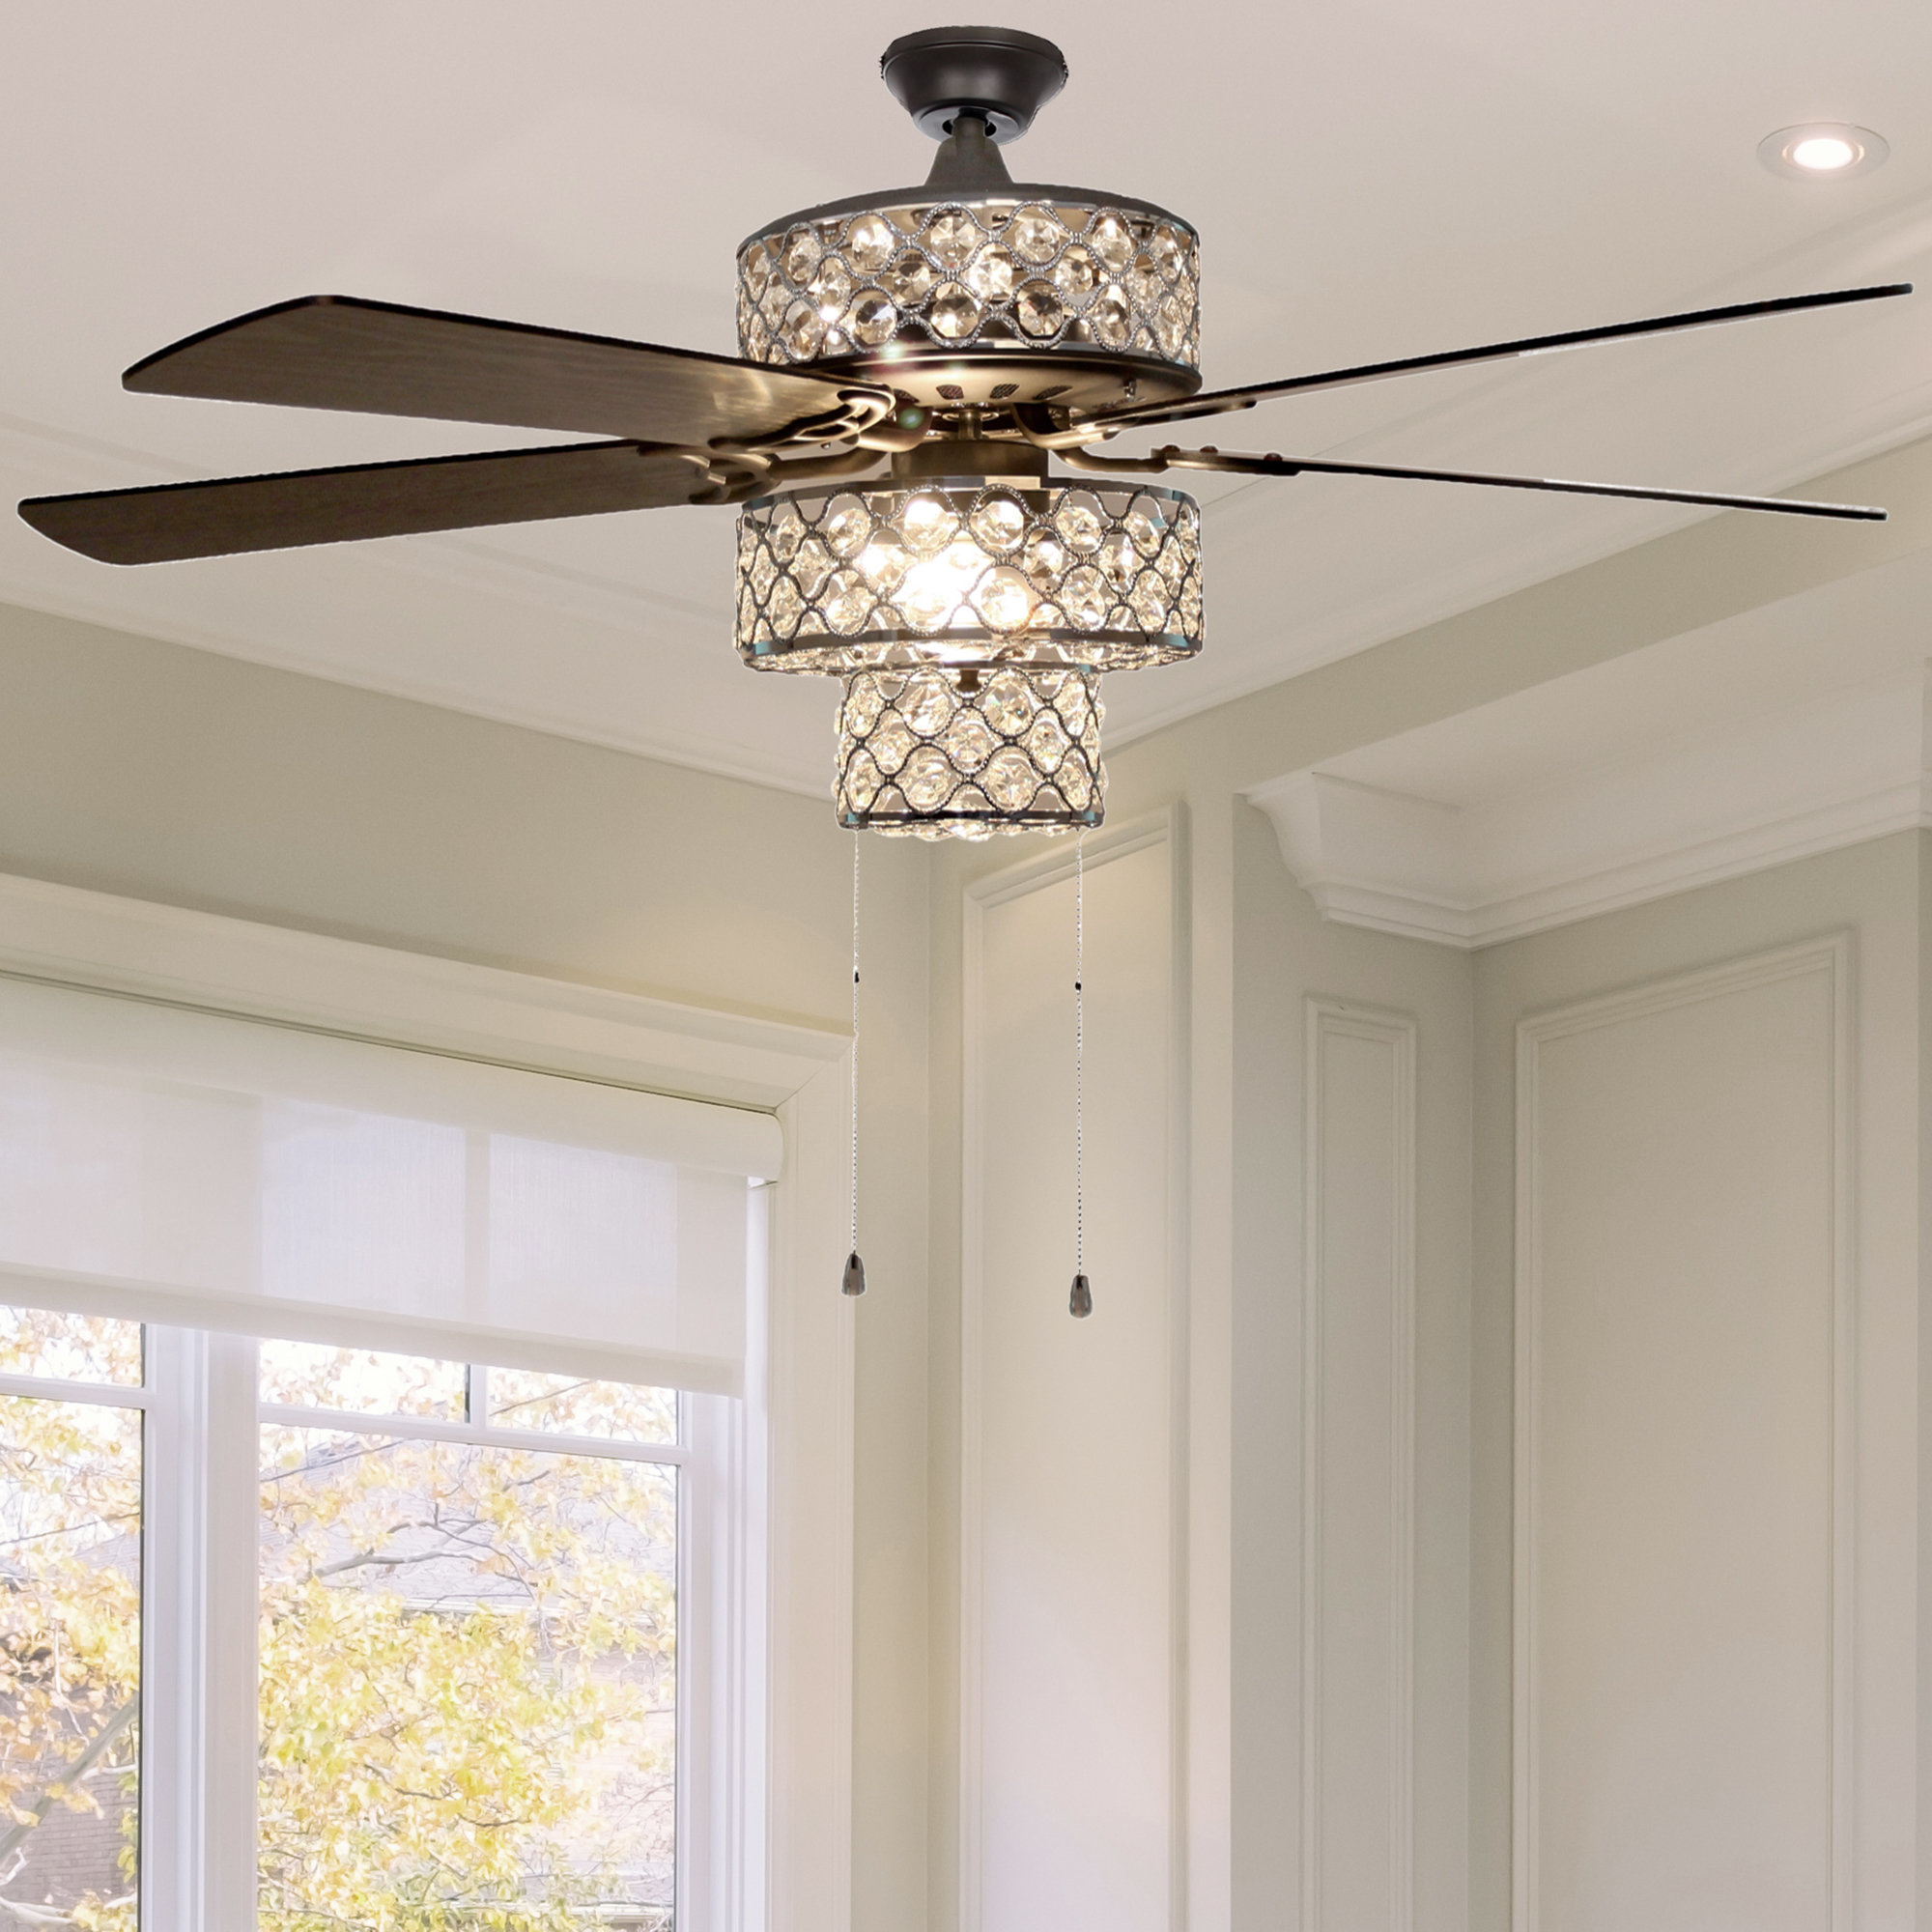 "Norah 5 Blade Ceiling Fans For 2020 52"" Marleigh Tri Tiered 5 Blade Ceiling Fan With Remote, Light Kit Included (View 3 of 20)"